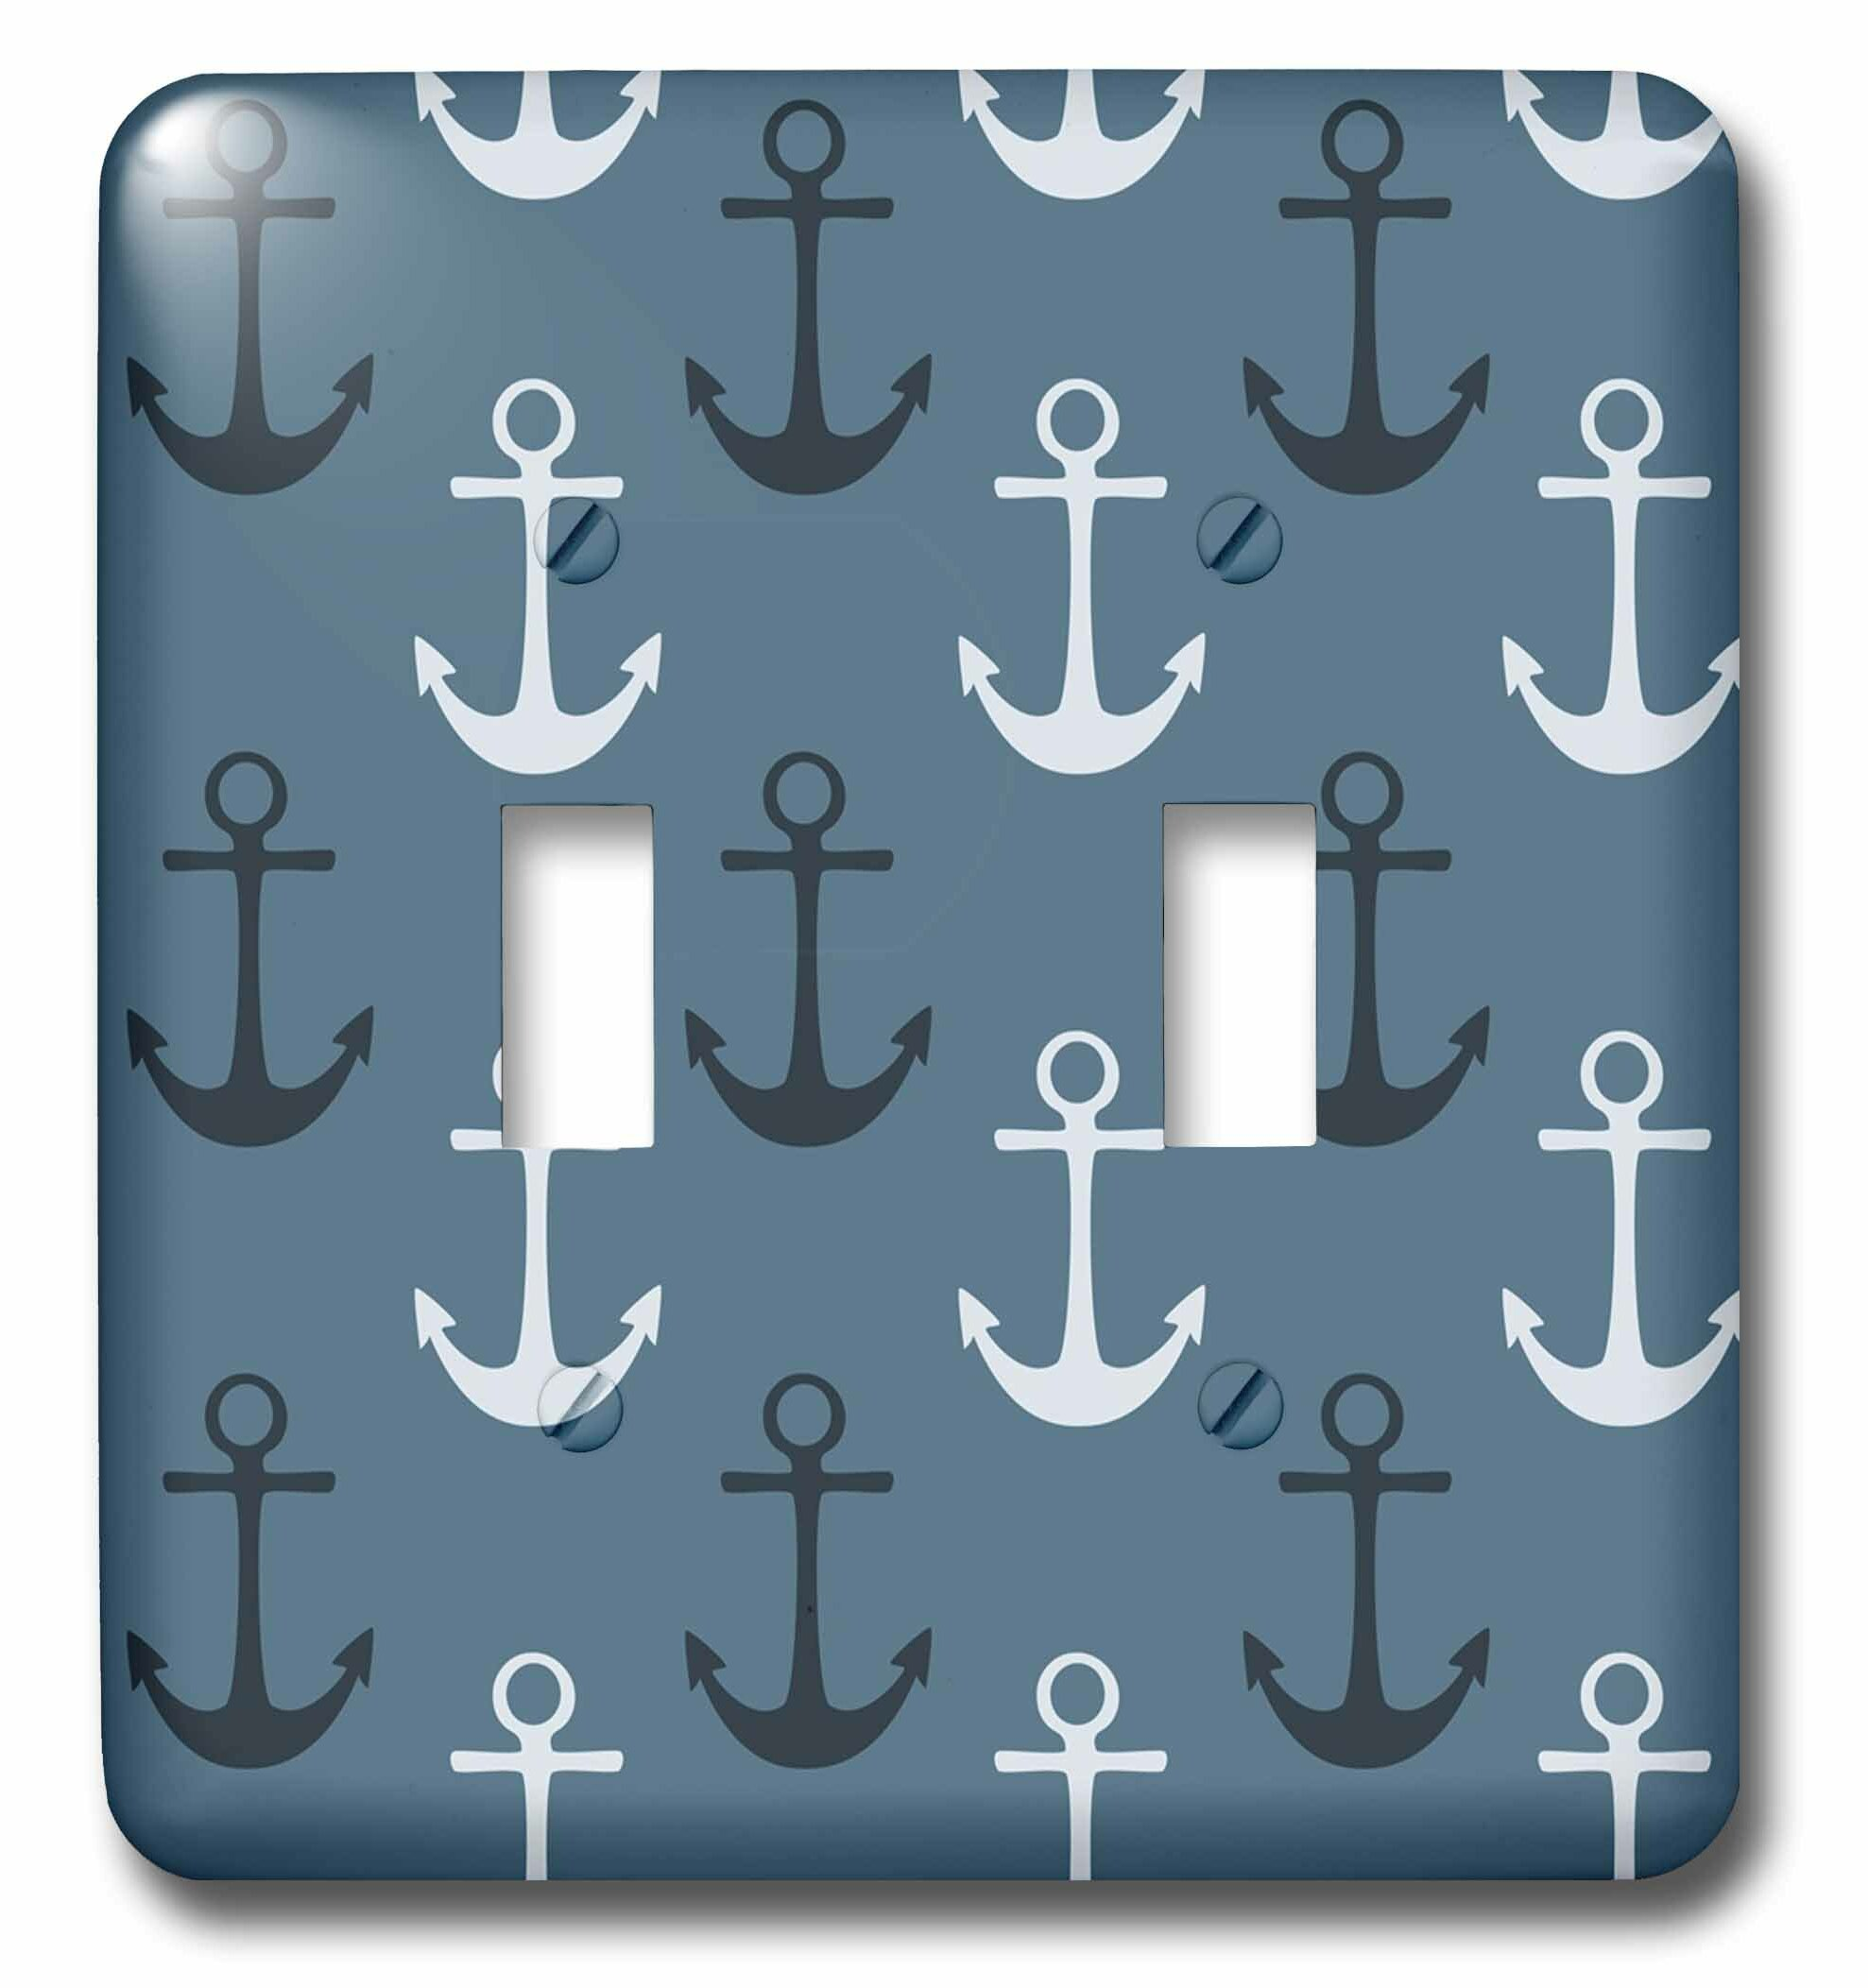 3drose Nautical Anchors In Beach Theme 2 Gang Toggle Light Switch Wall Plate Wayfair